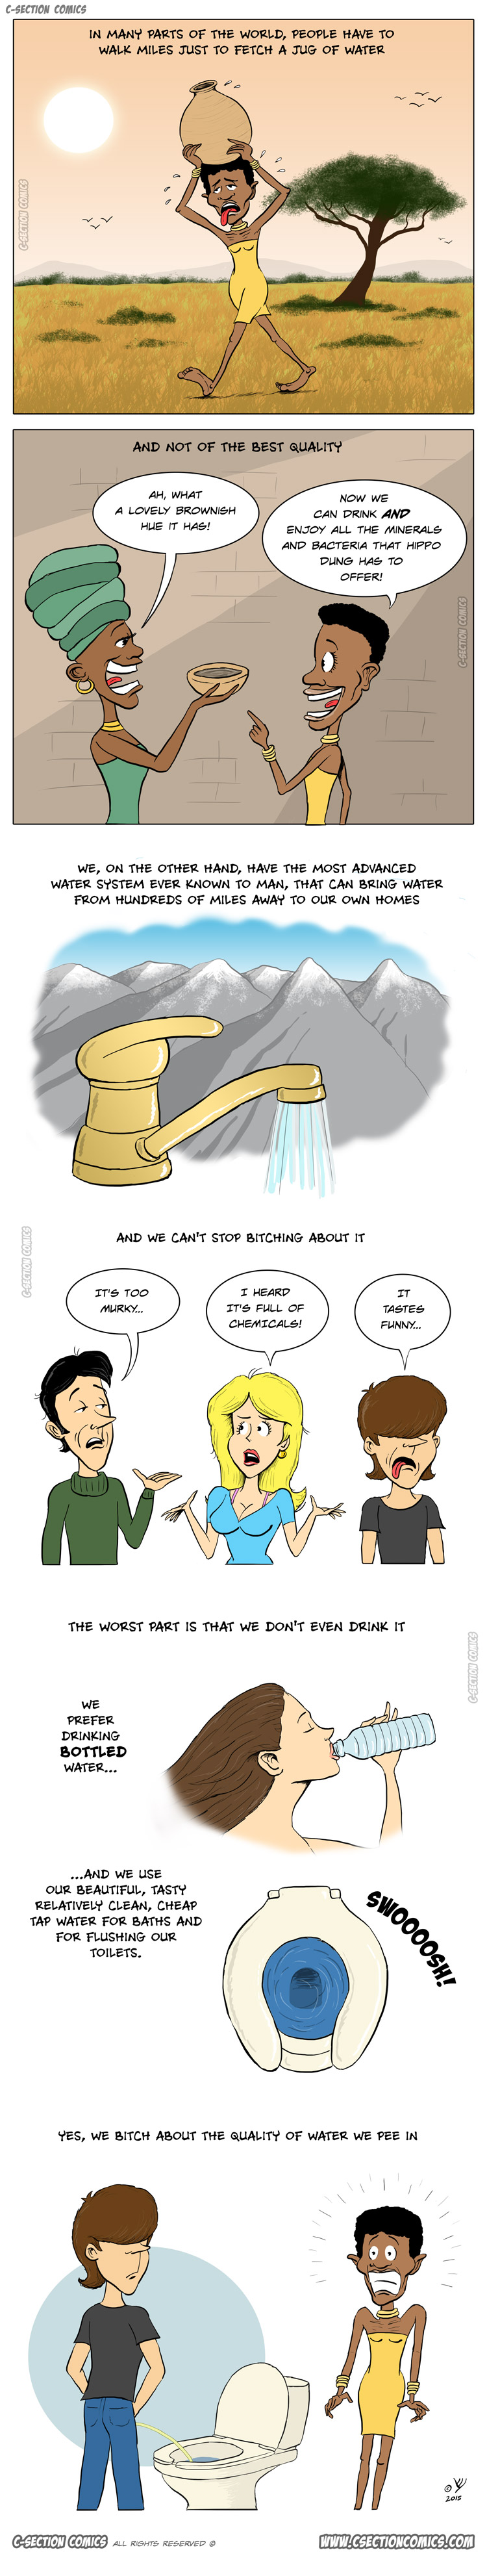 The Terrible Way We Treat Our Water - cartoon by C-Section Comics